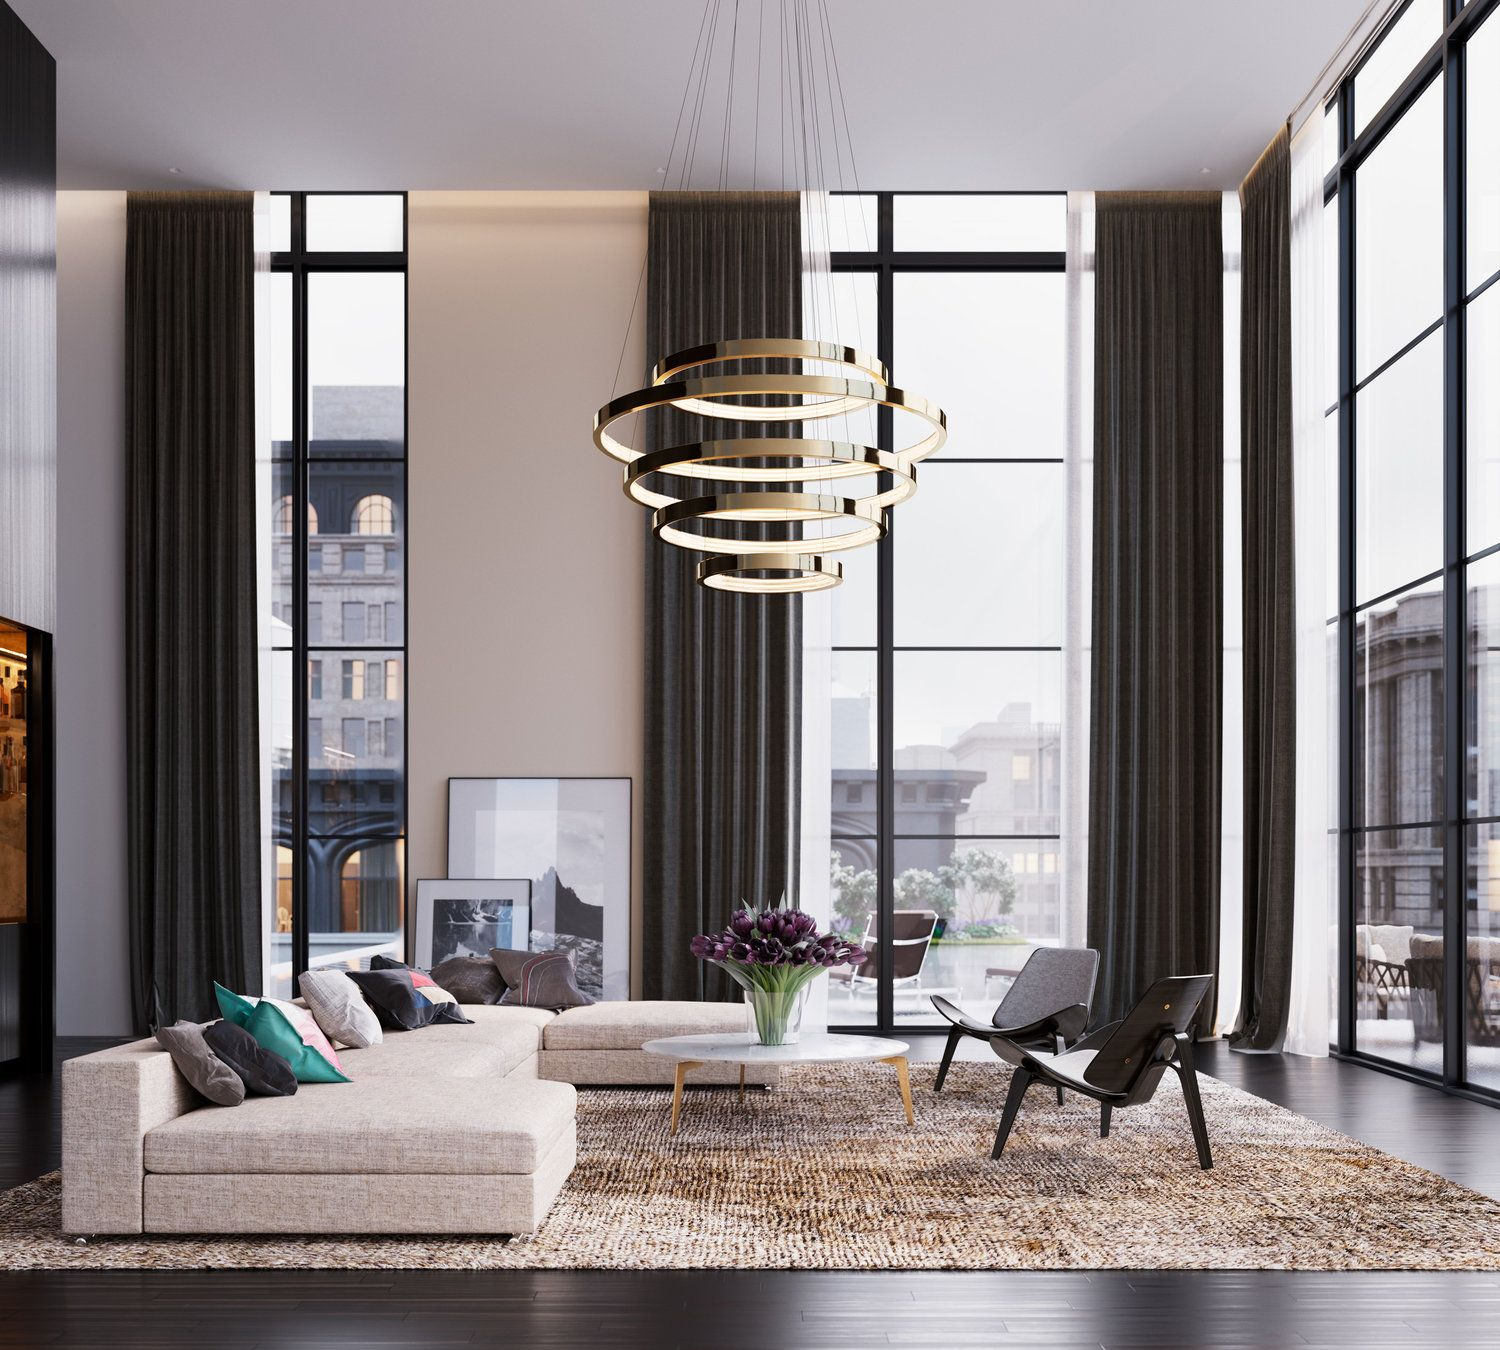 Cgi Cameron Design House Spaces - London